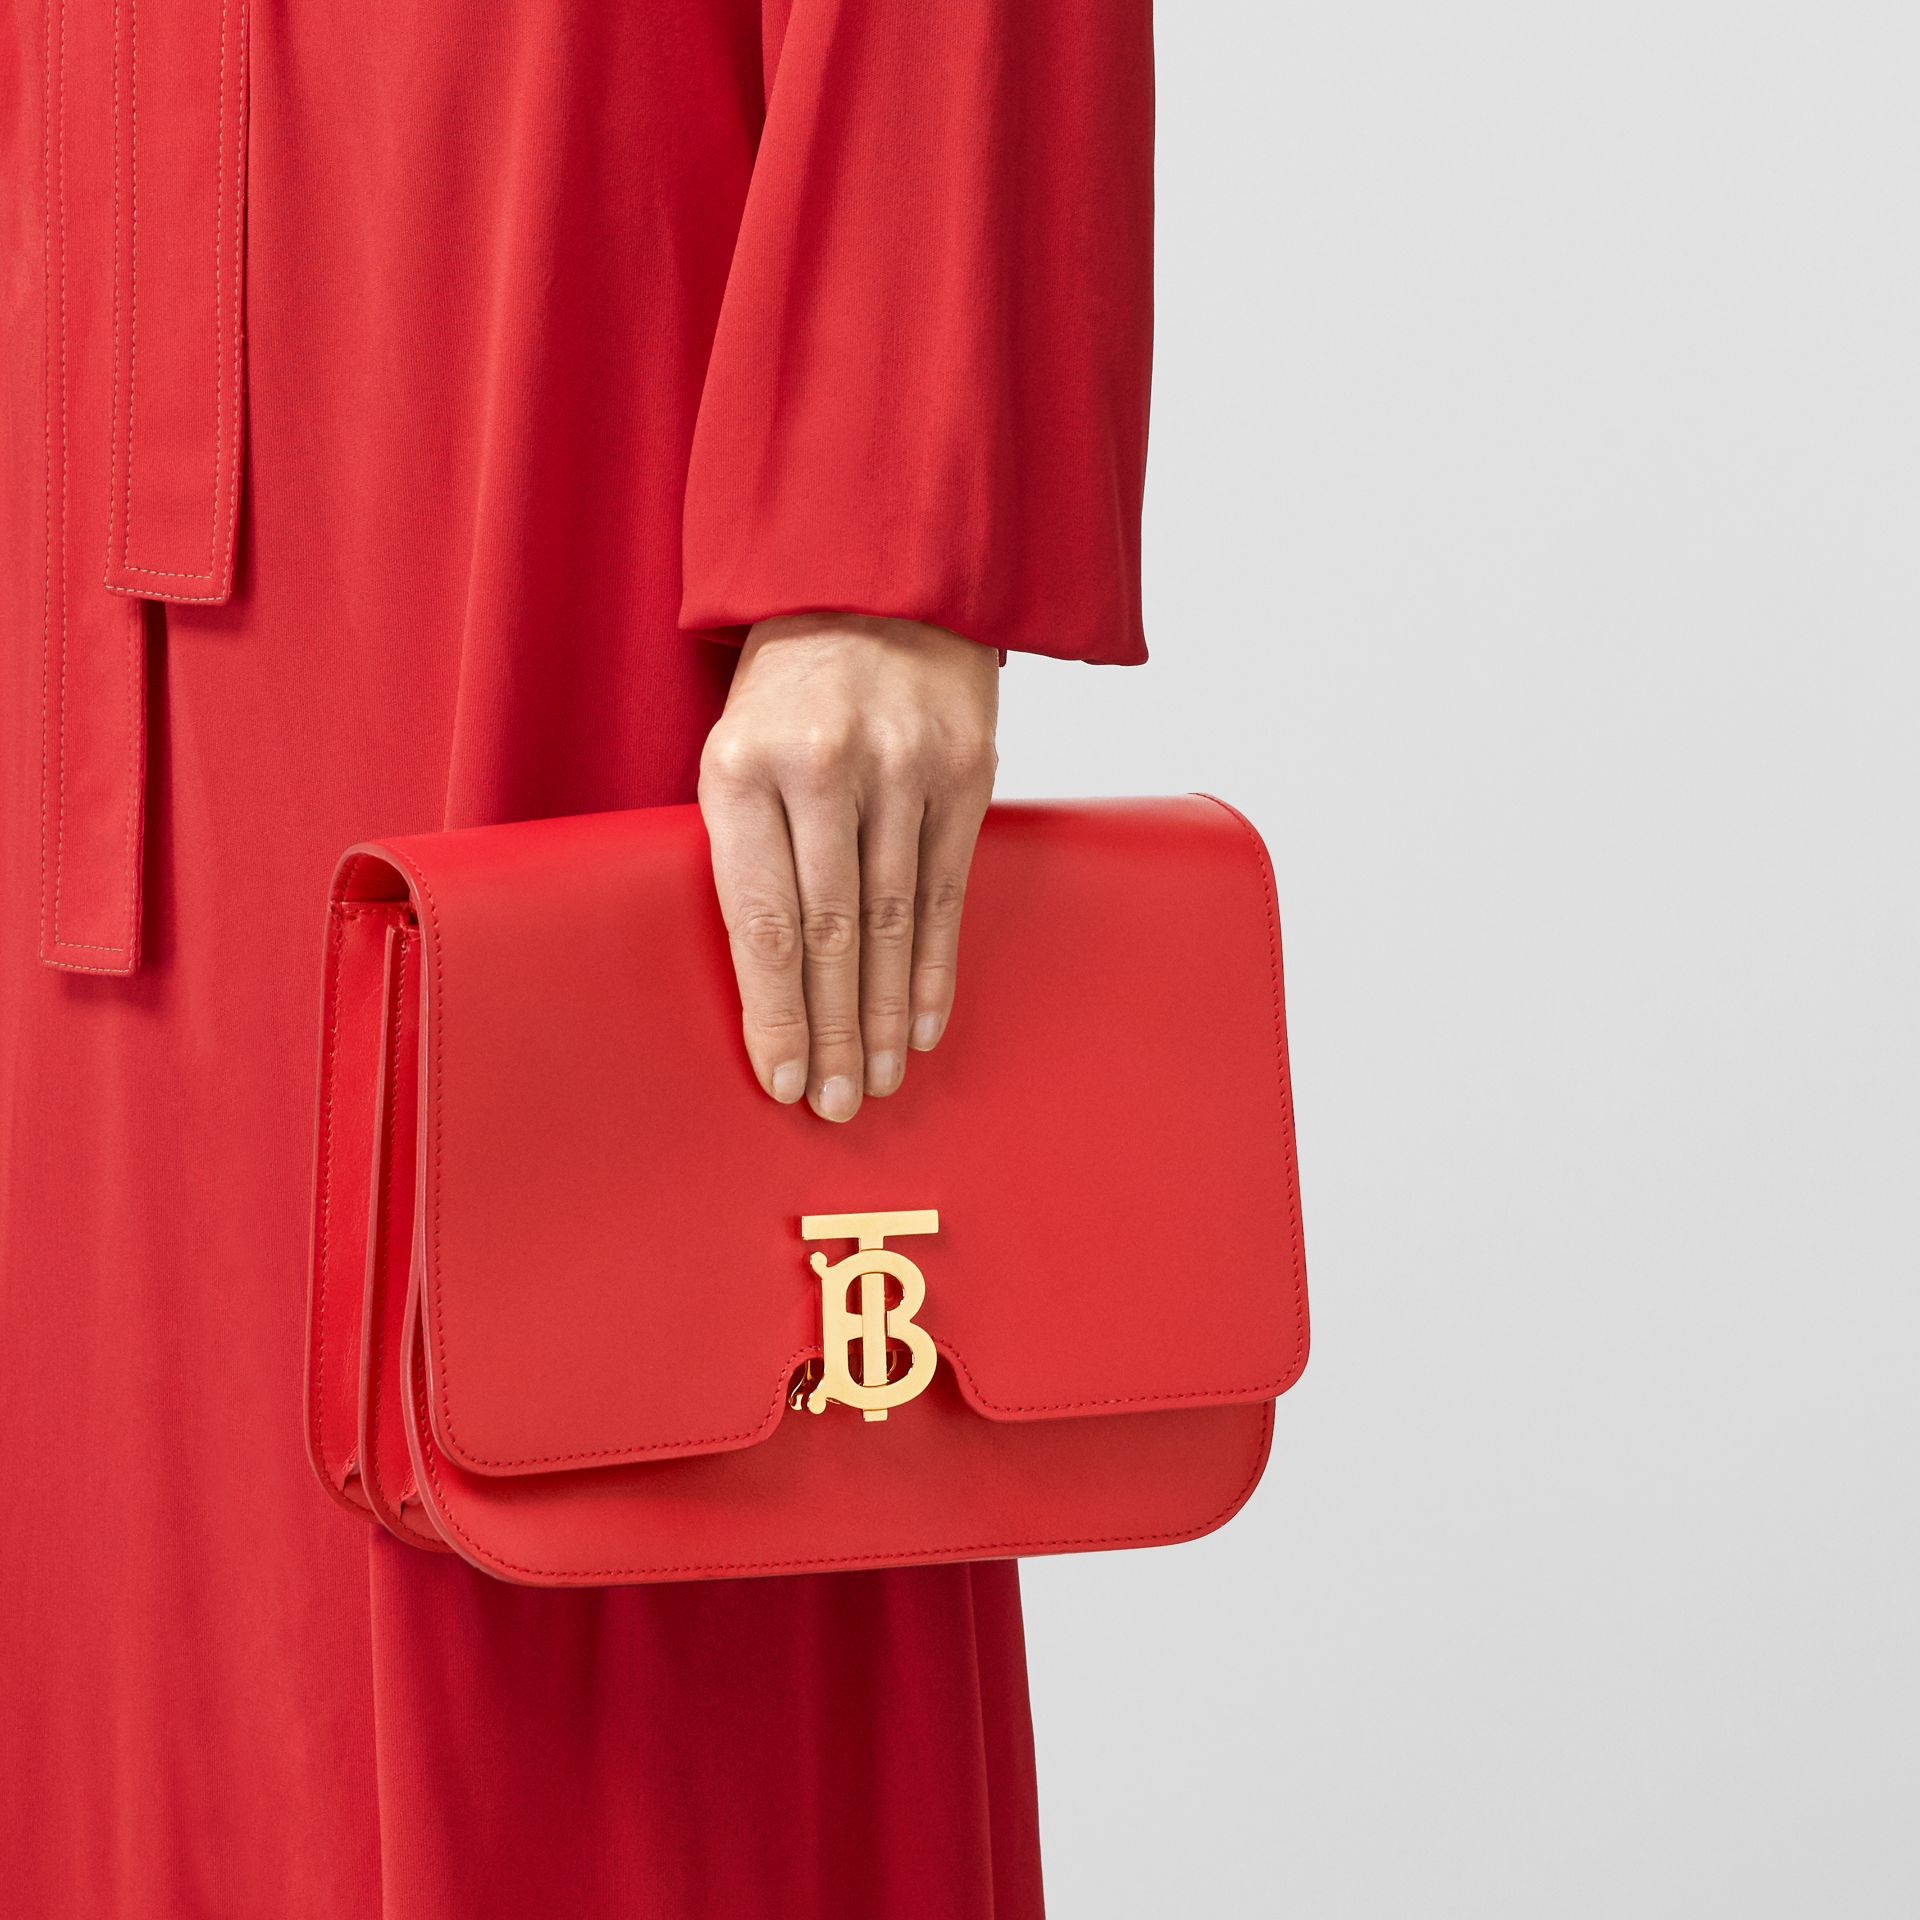 Medium Leather TB Bag in Bright Red - Women | Burberry Australia - gallery image 8